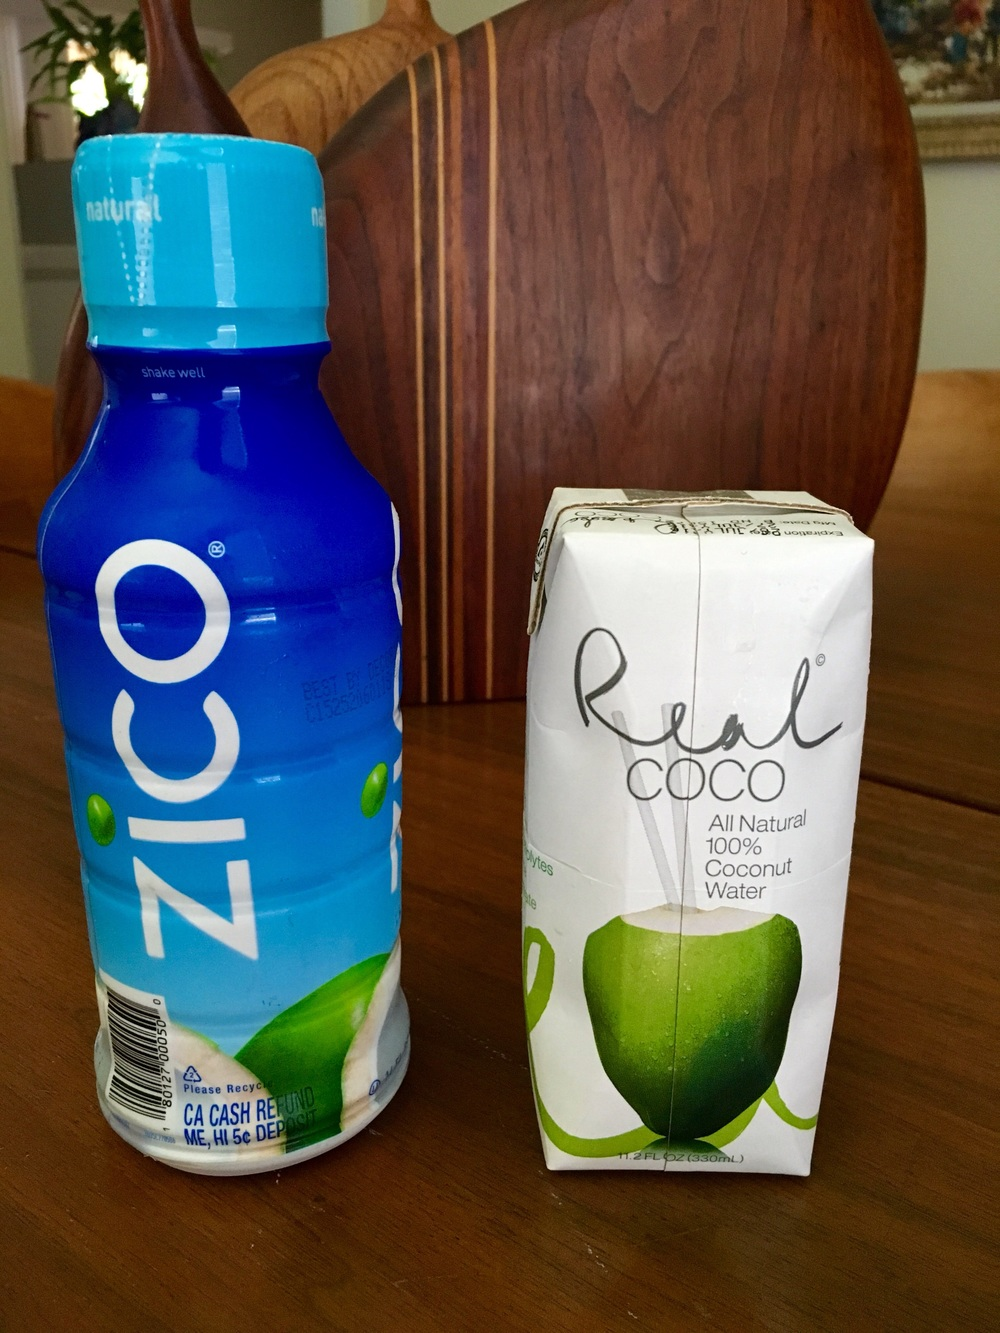 Coconut water available at most grocery or health food stores